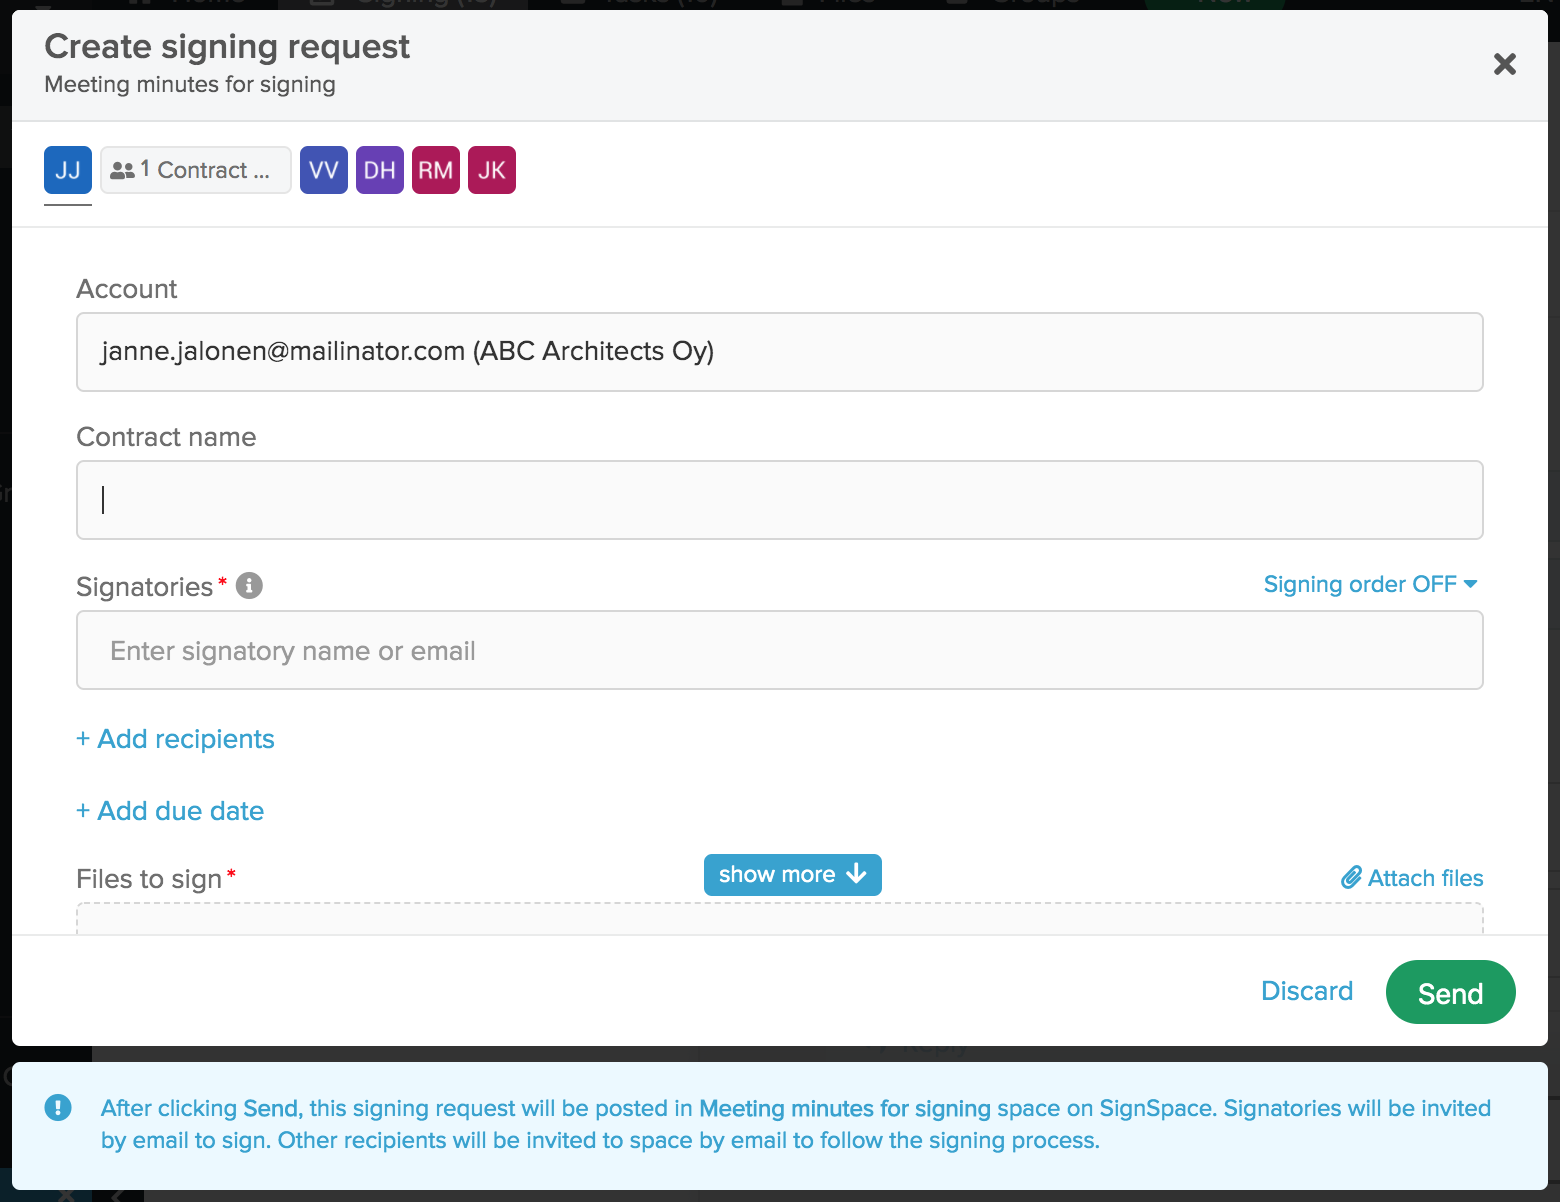 New signing request form for posting in an existing space